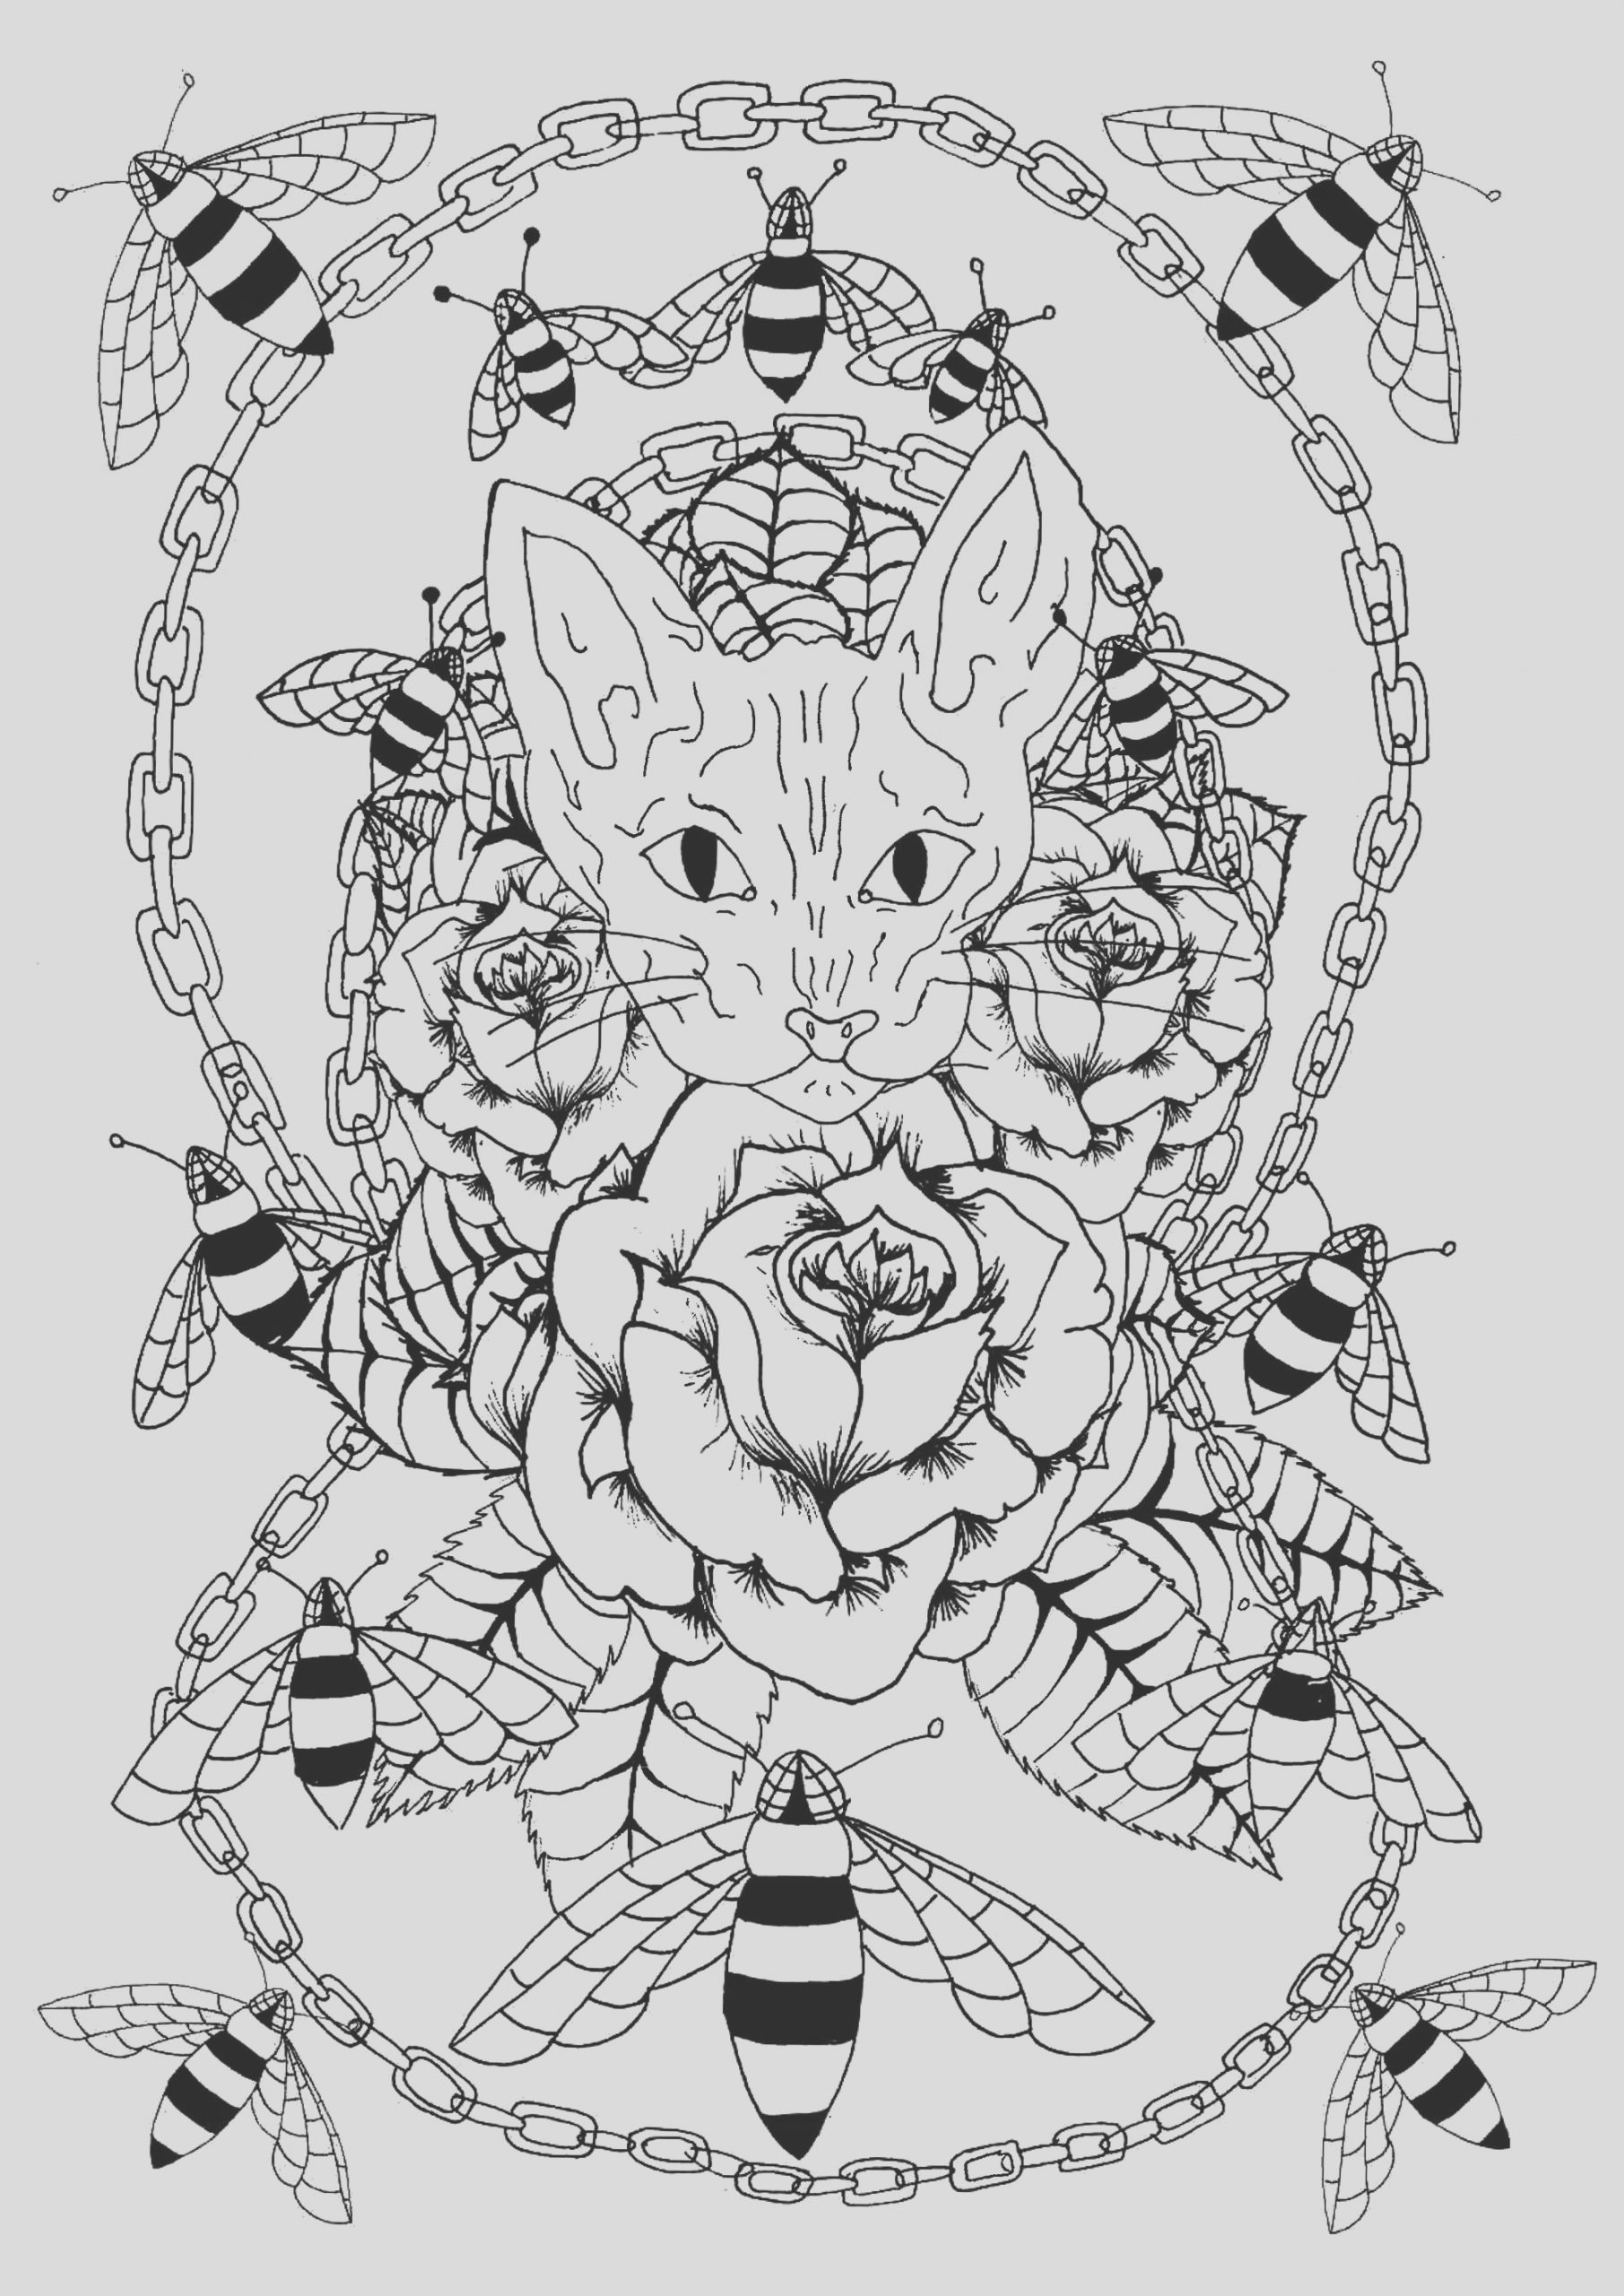 image=tatoo coloring sphinx bees and metal chain 1